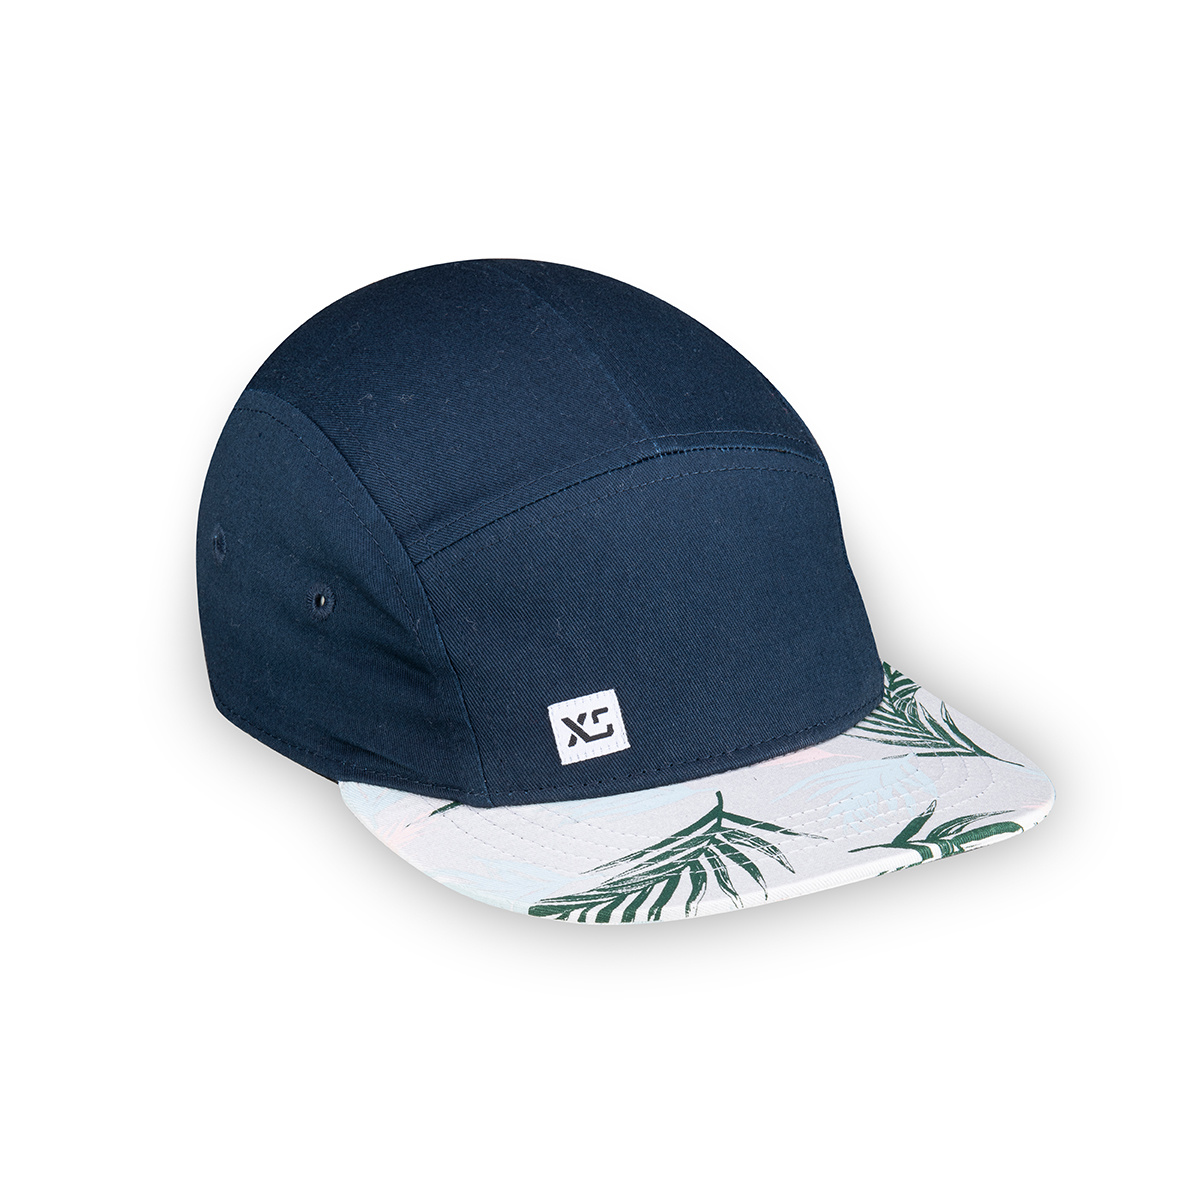 XS Unified XS Unified Kid's 5 Panel Hat Navy Tropical